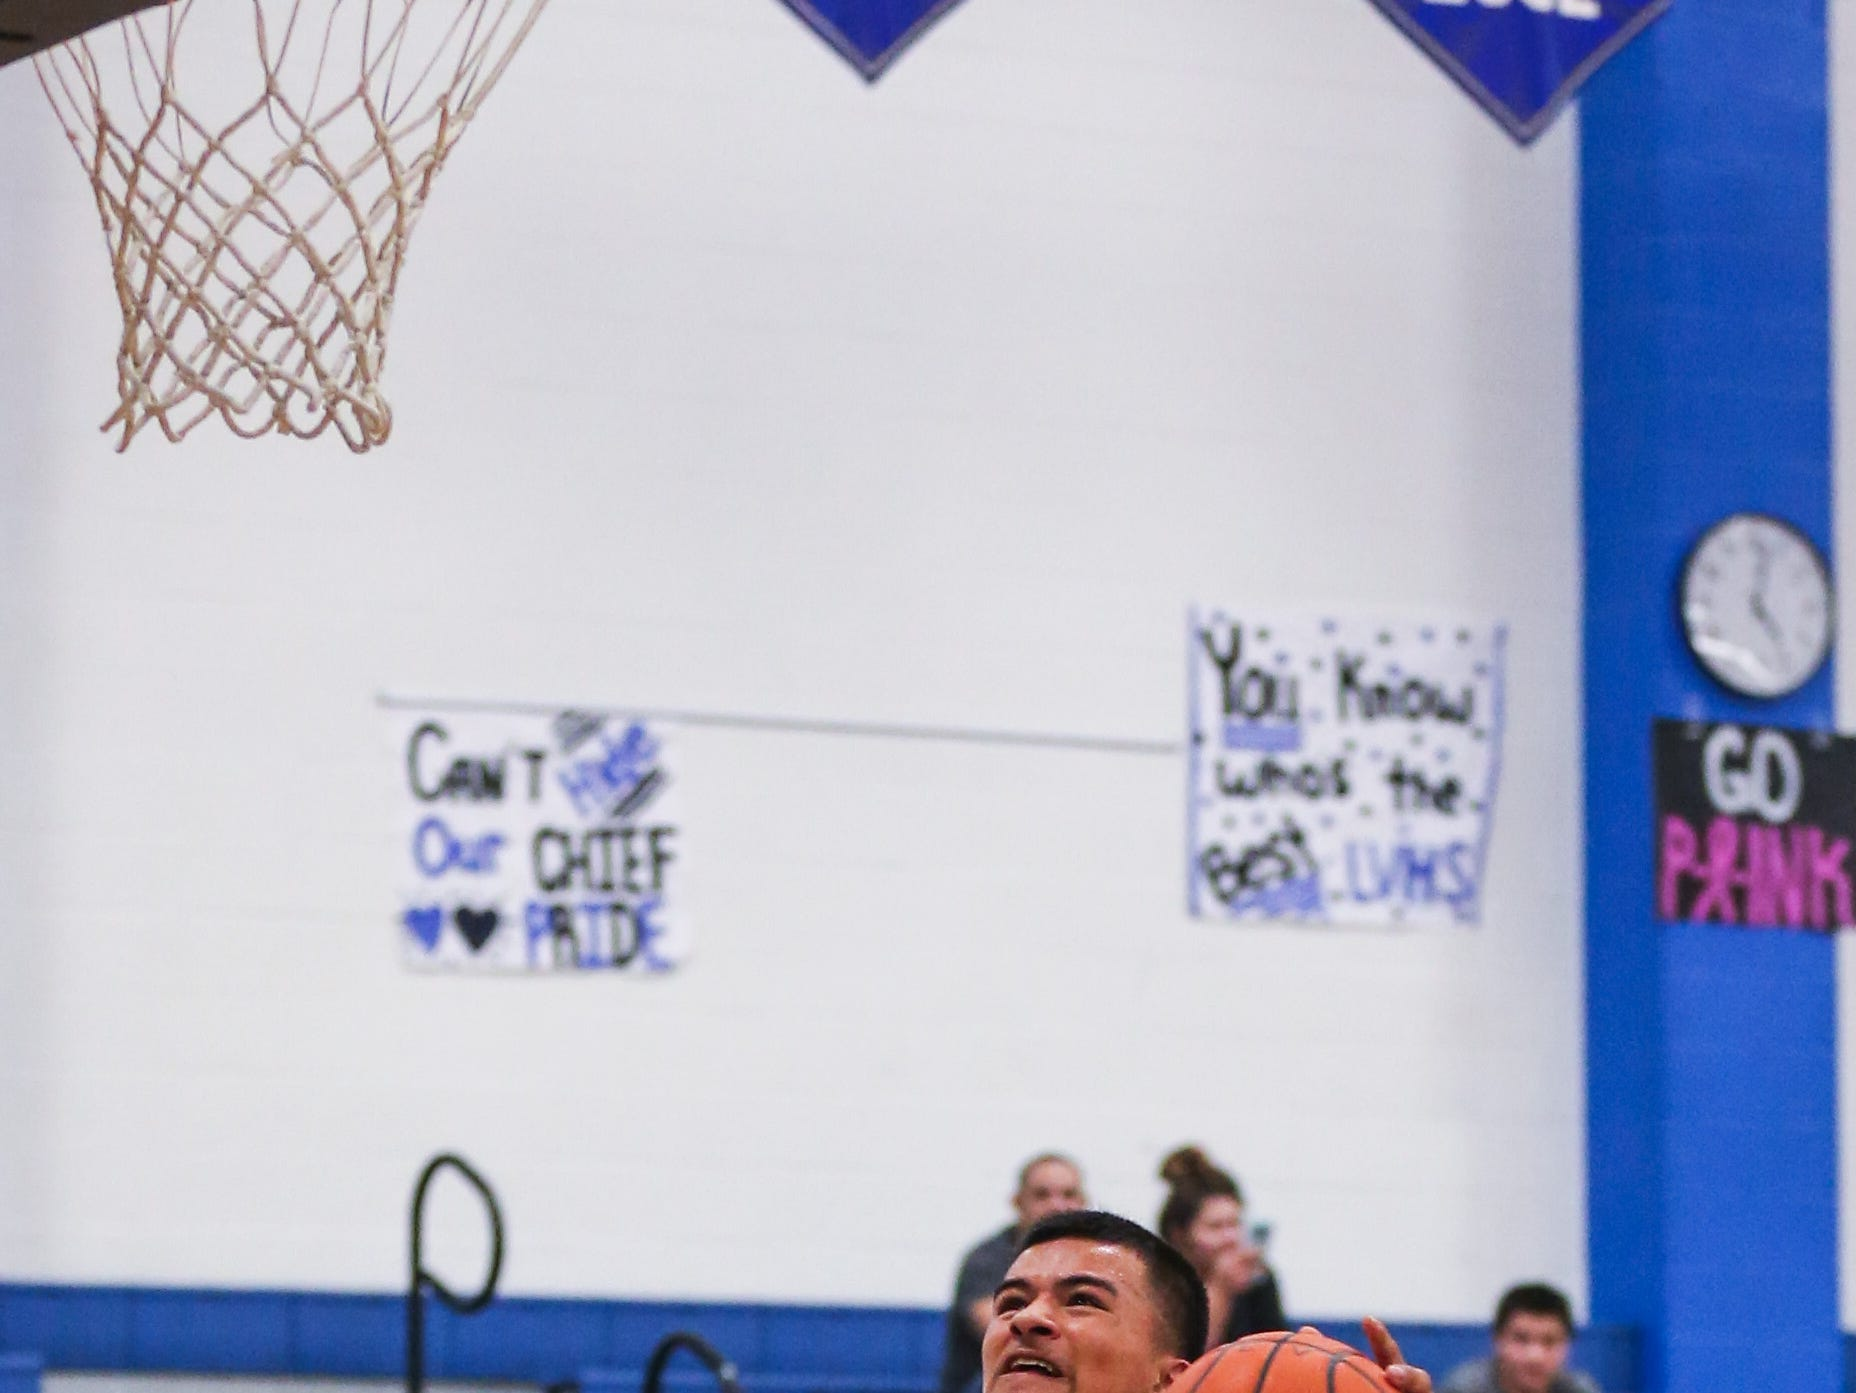 Lake View's Johnny Espinosa jumps to make a shot against Del Valle during the Doug McCutchen Basketball Tournament Thursday, Nov. 29, 2018, at Central High School.